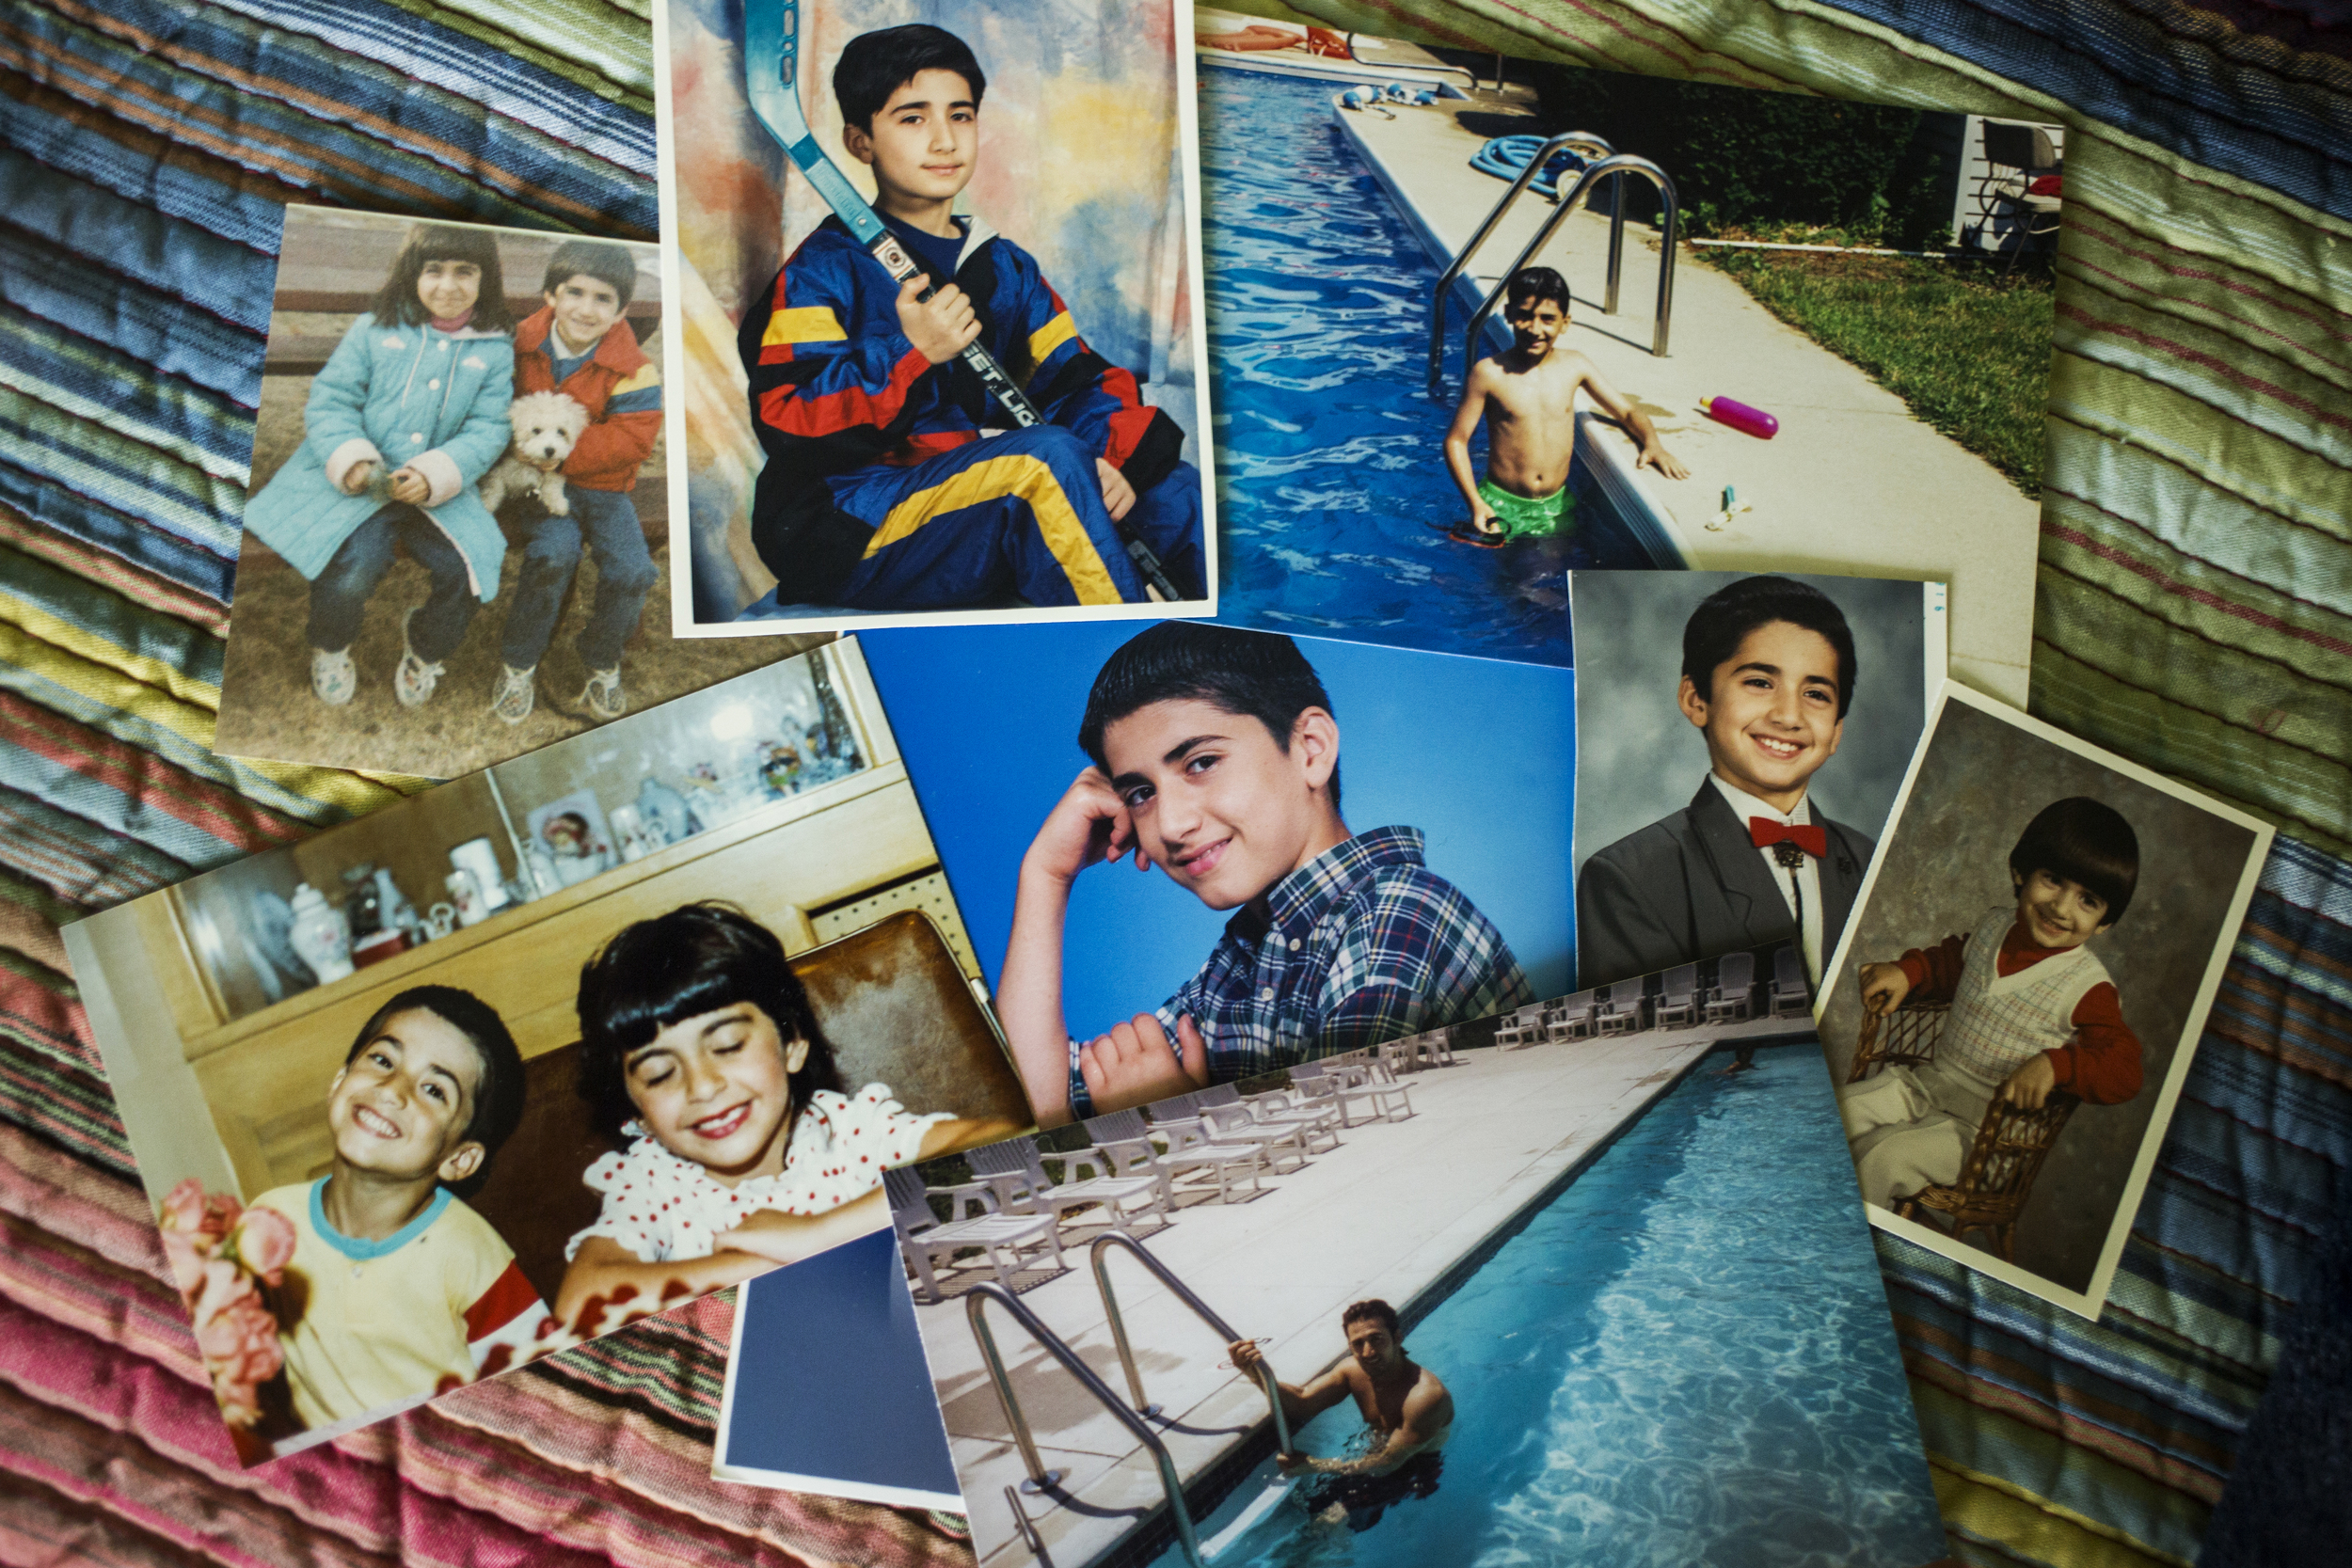 Photos from Amir's childhood show the happy, peaceful person Amir's family and friends know him to be.